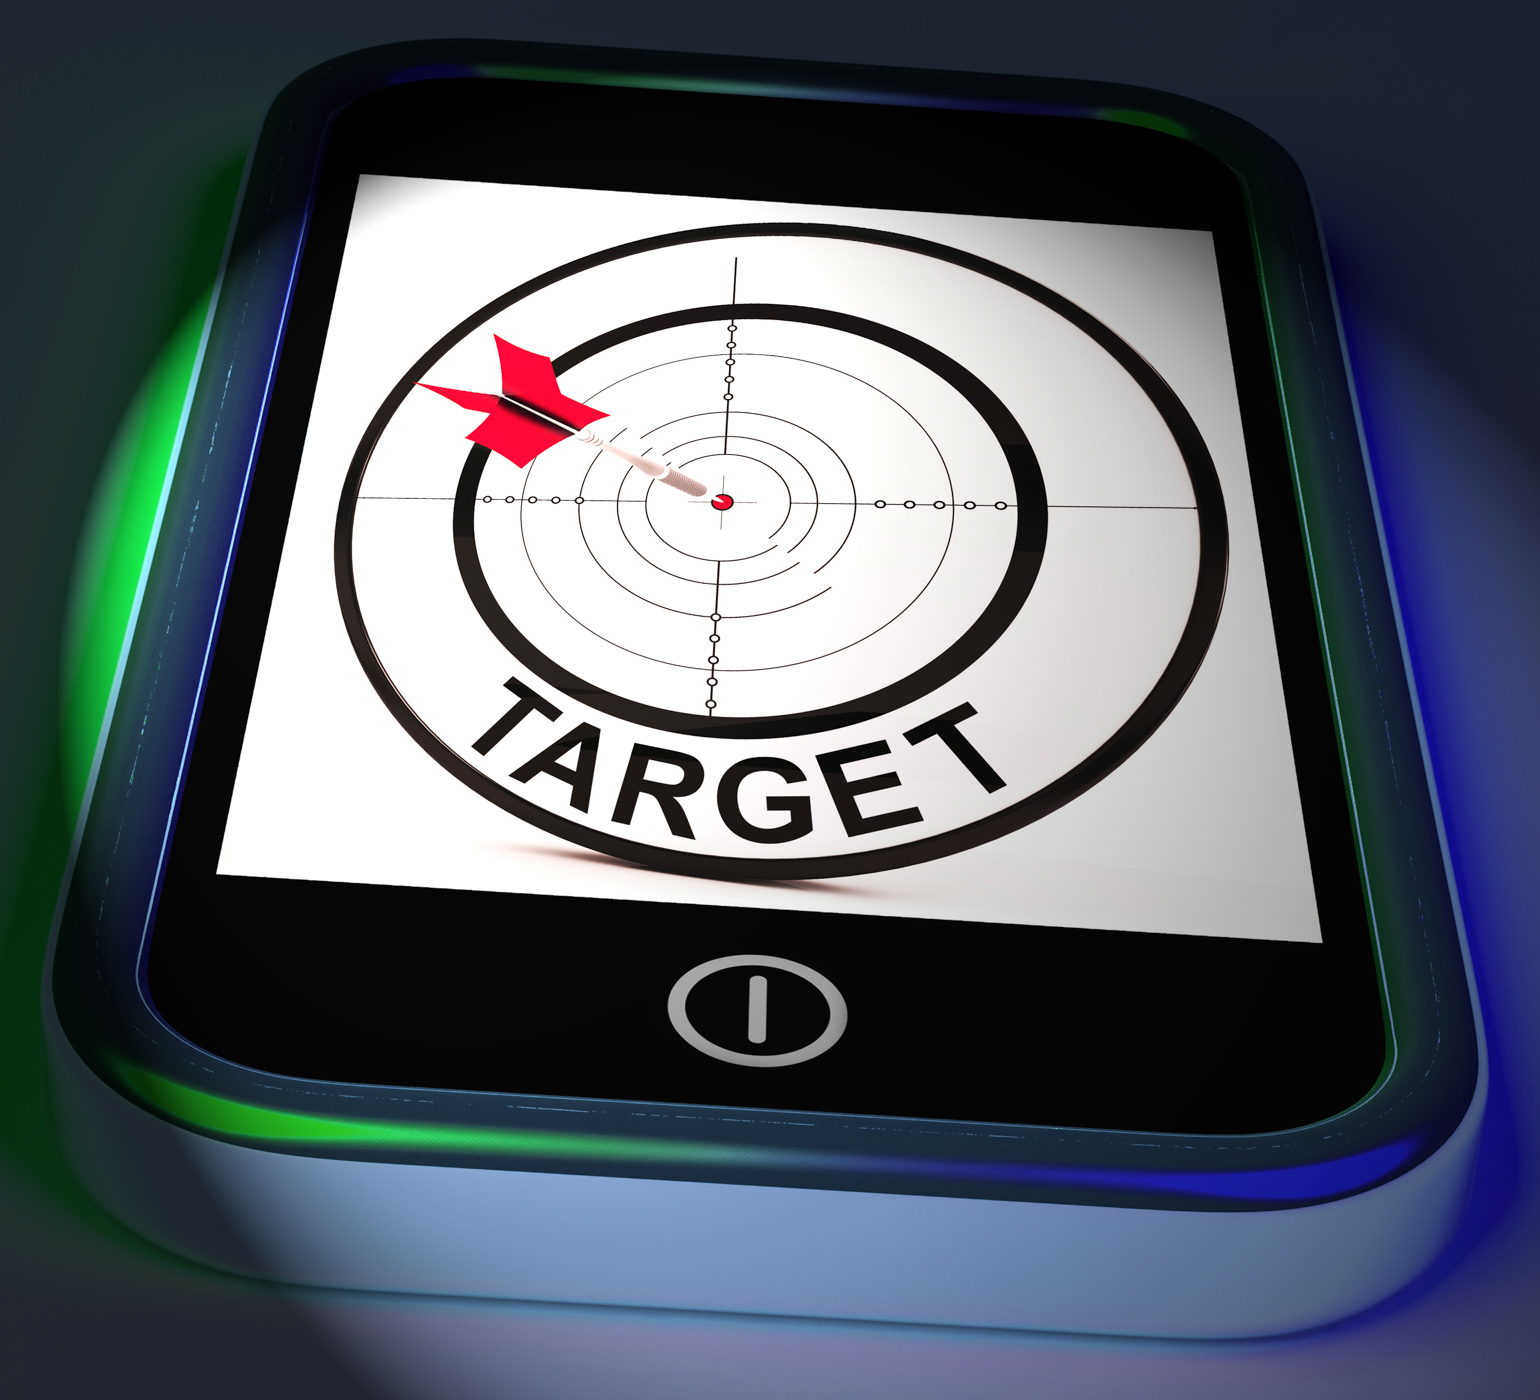 Target smartphone displays goals aims and objectives photo